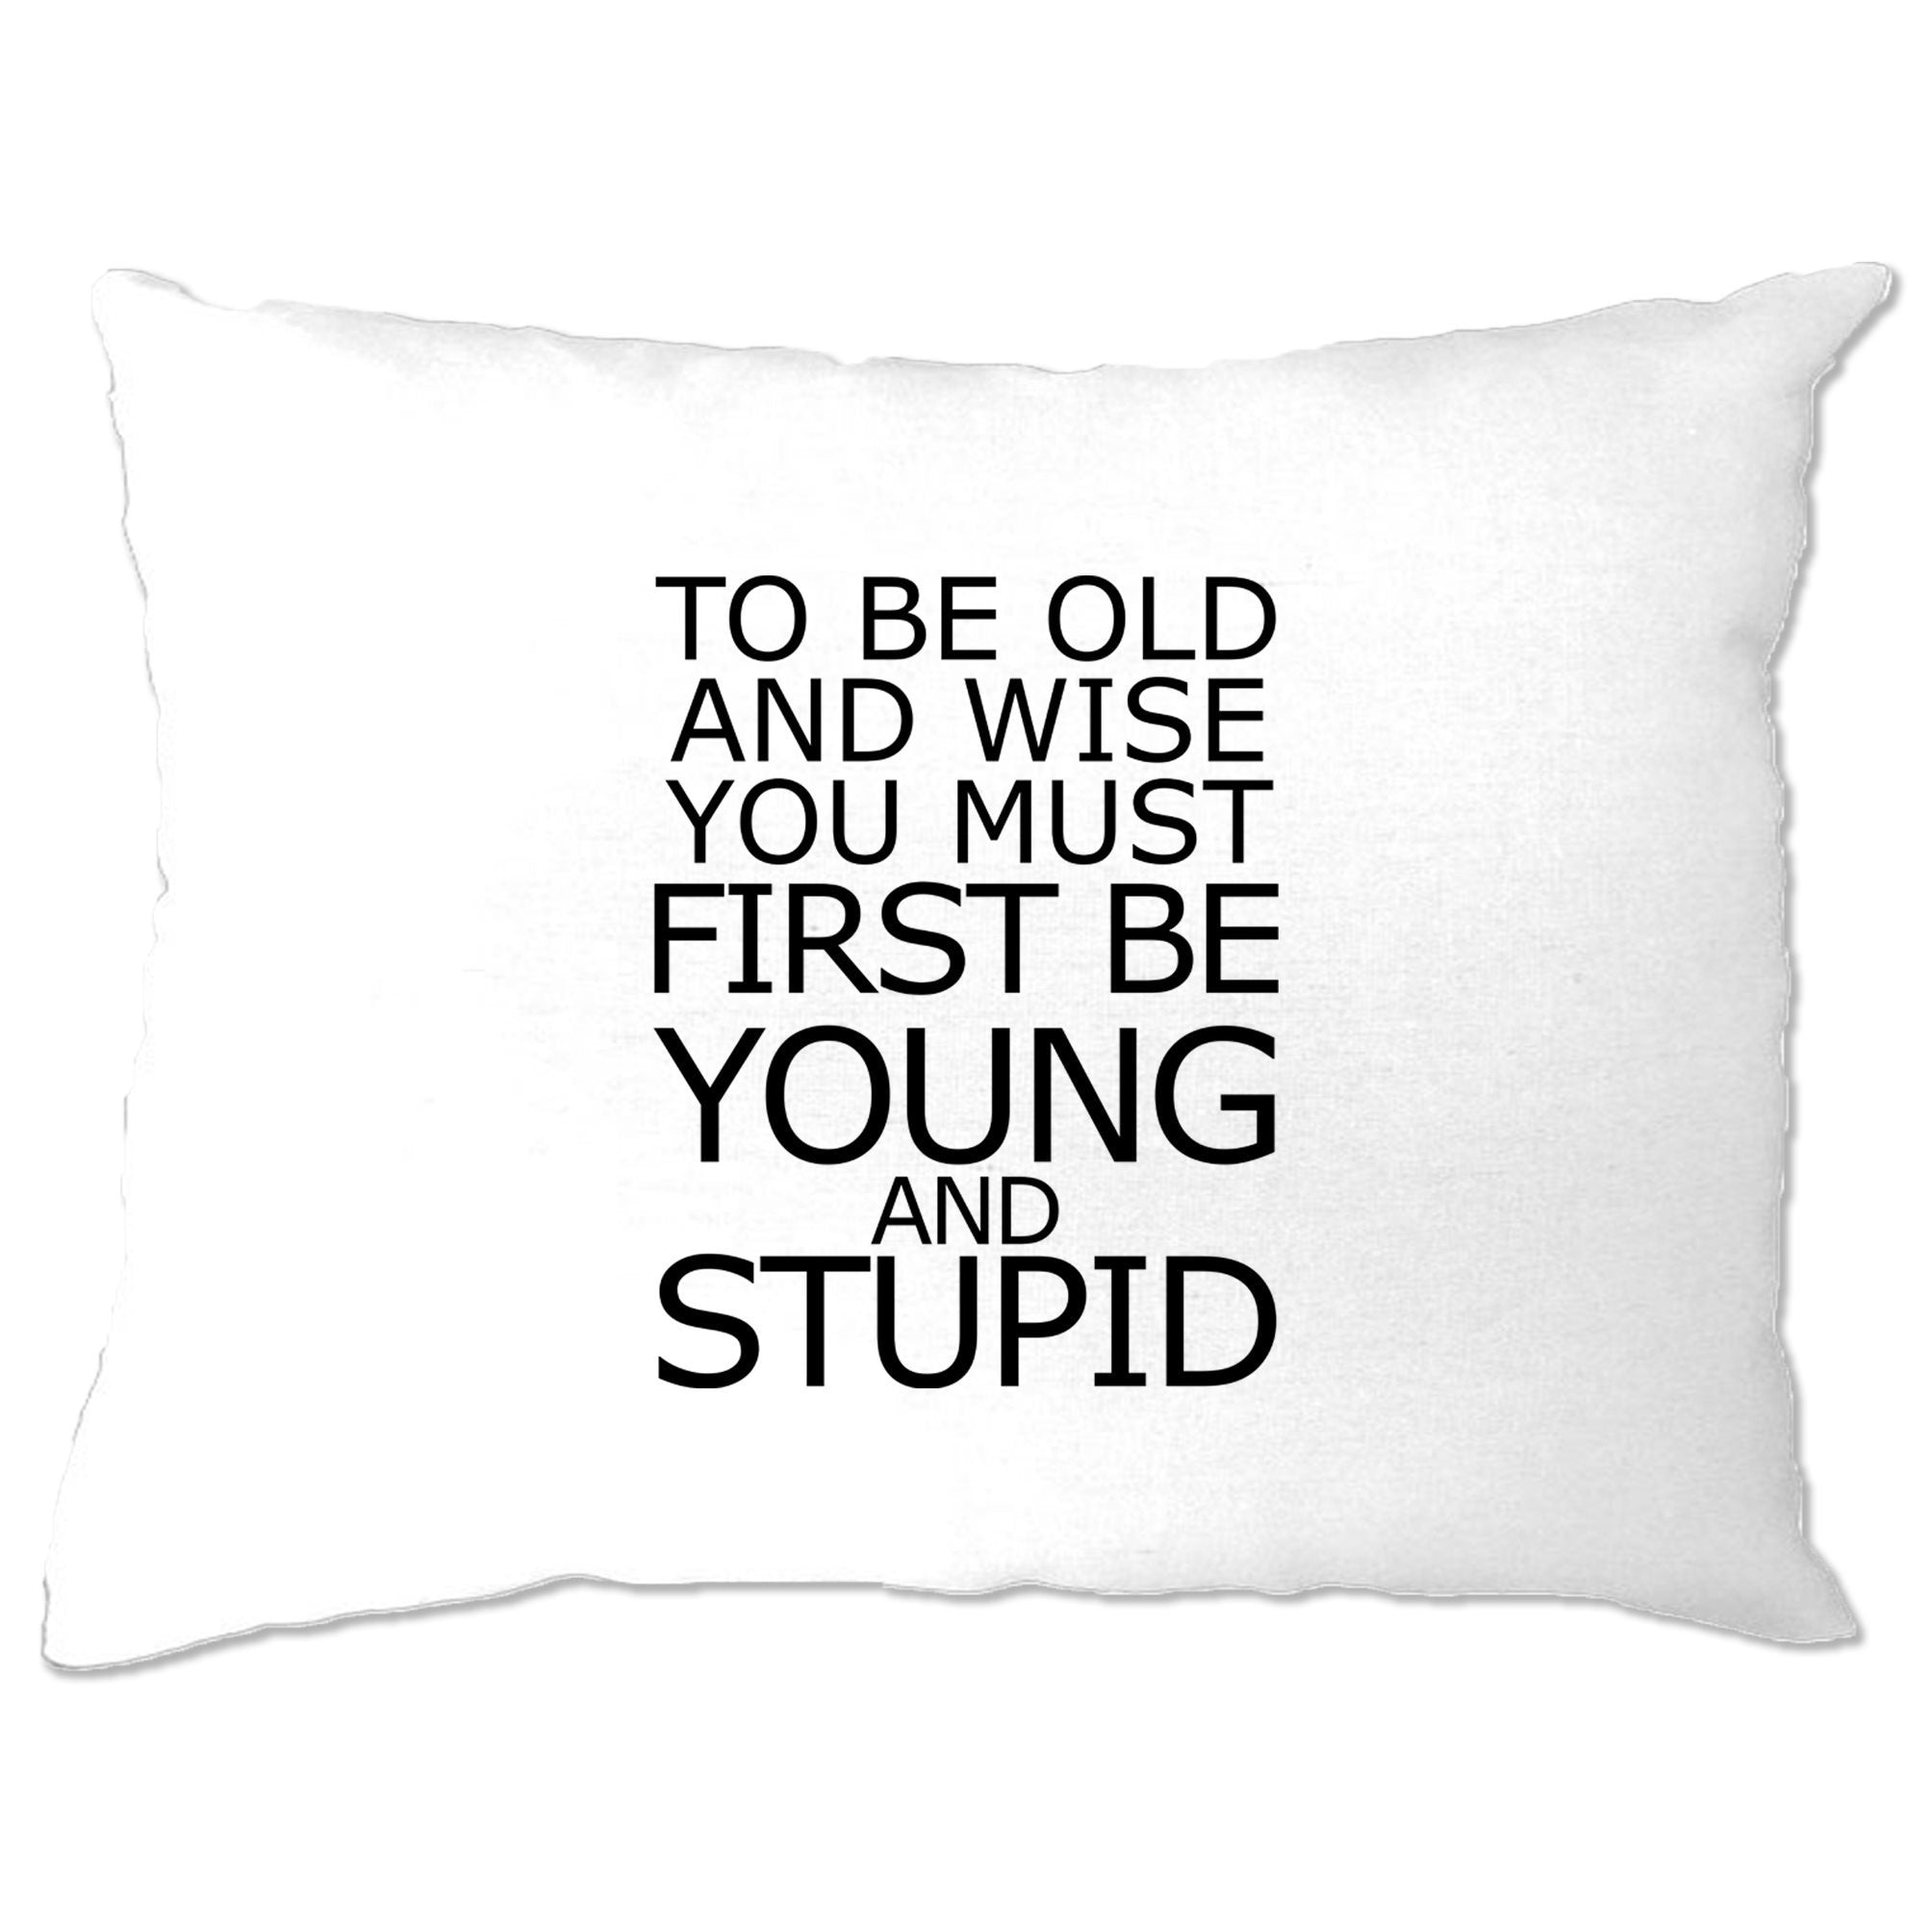 Joke Slogan Pillow Case To Be Old And Wise